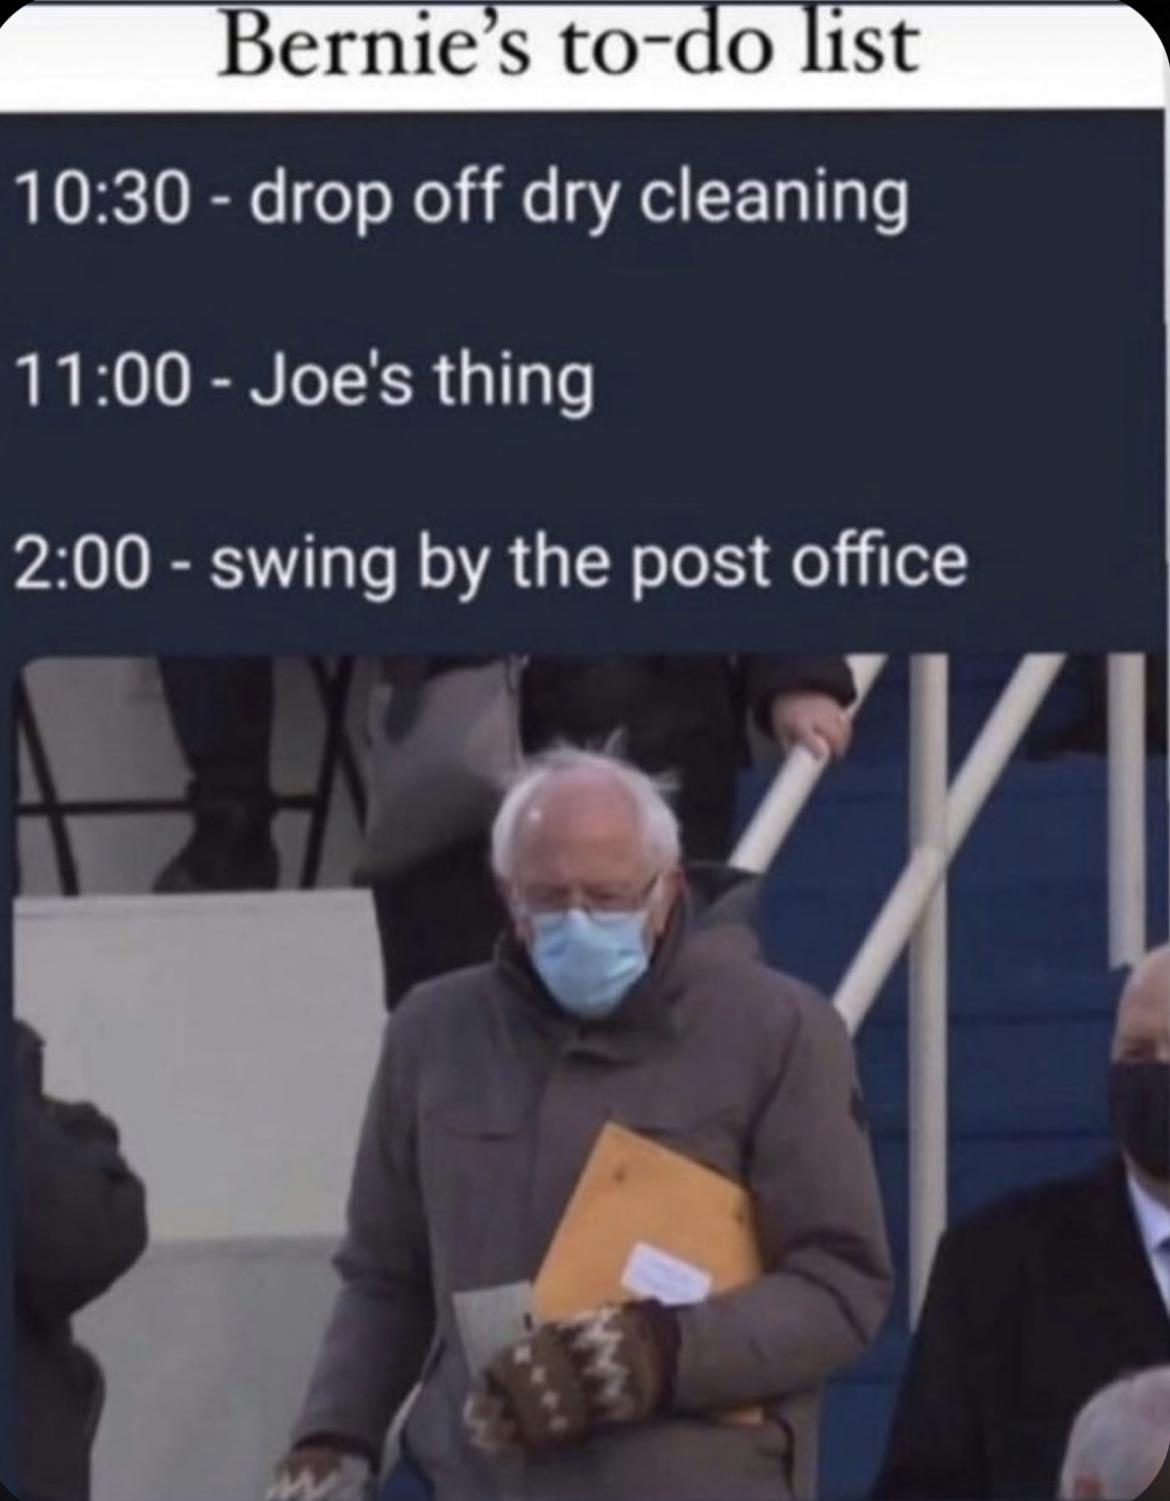 The Bernie meme is one example that unified the internet after Biden